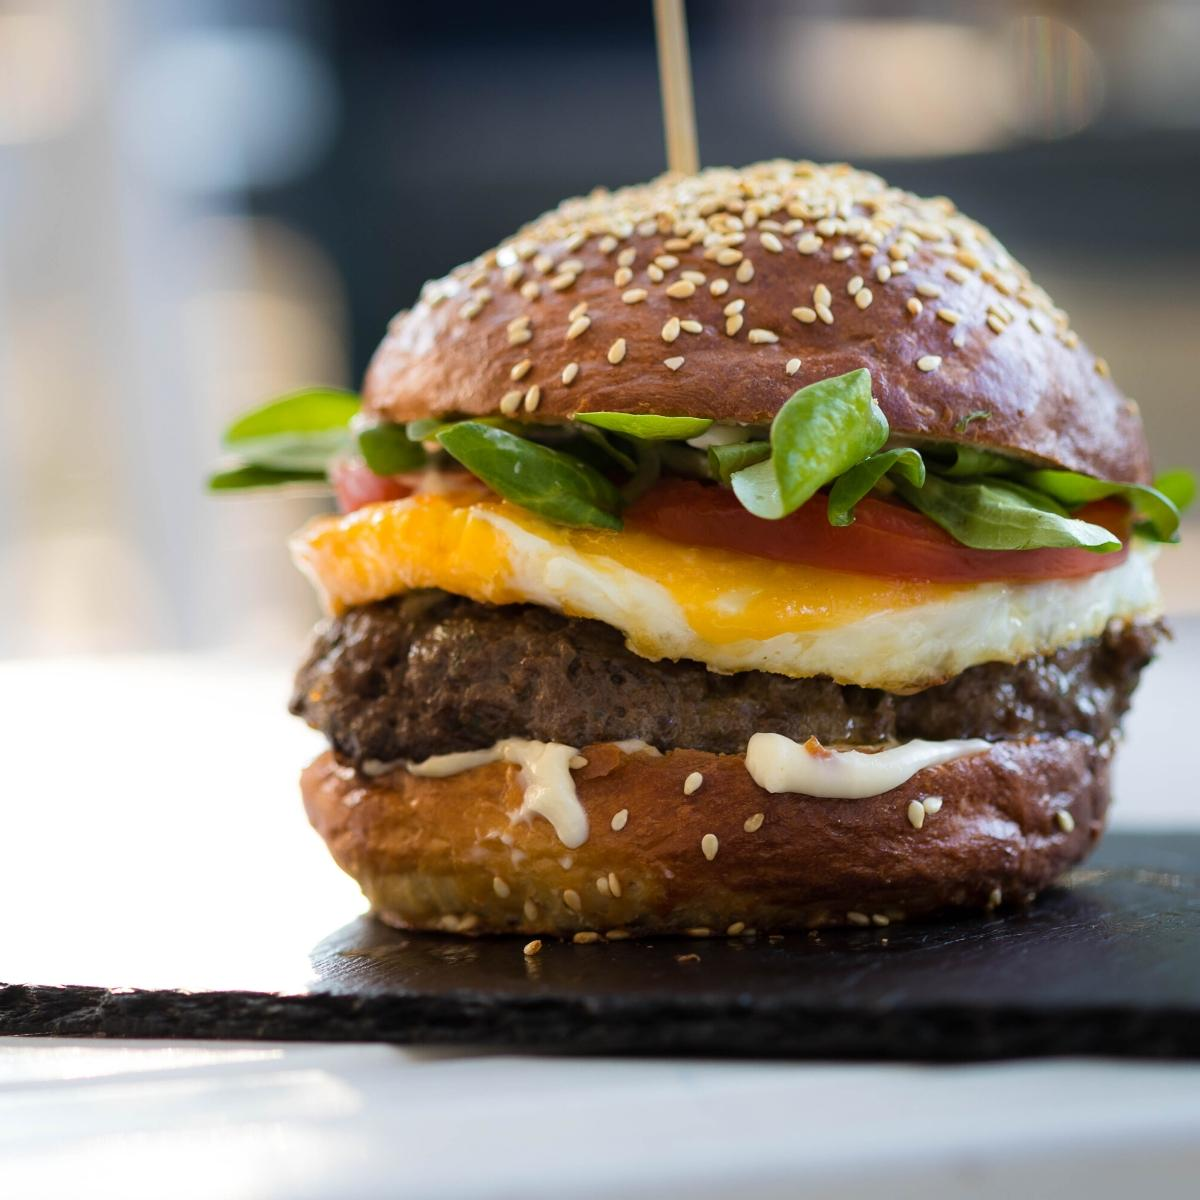 Delicious Hamburger Recipes that you will want to try and add to your family meal plan this week